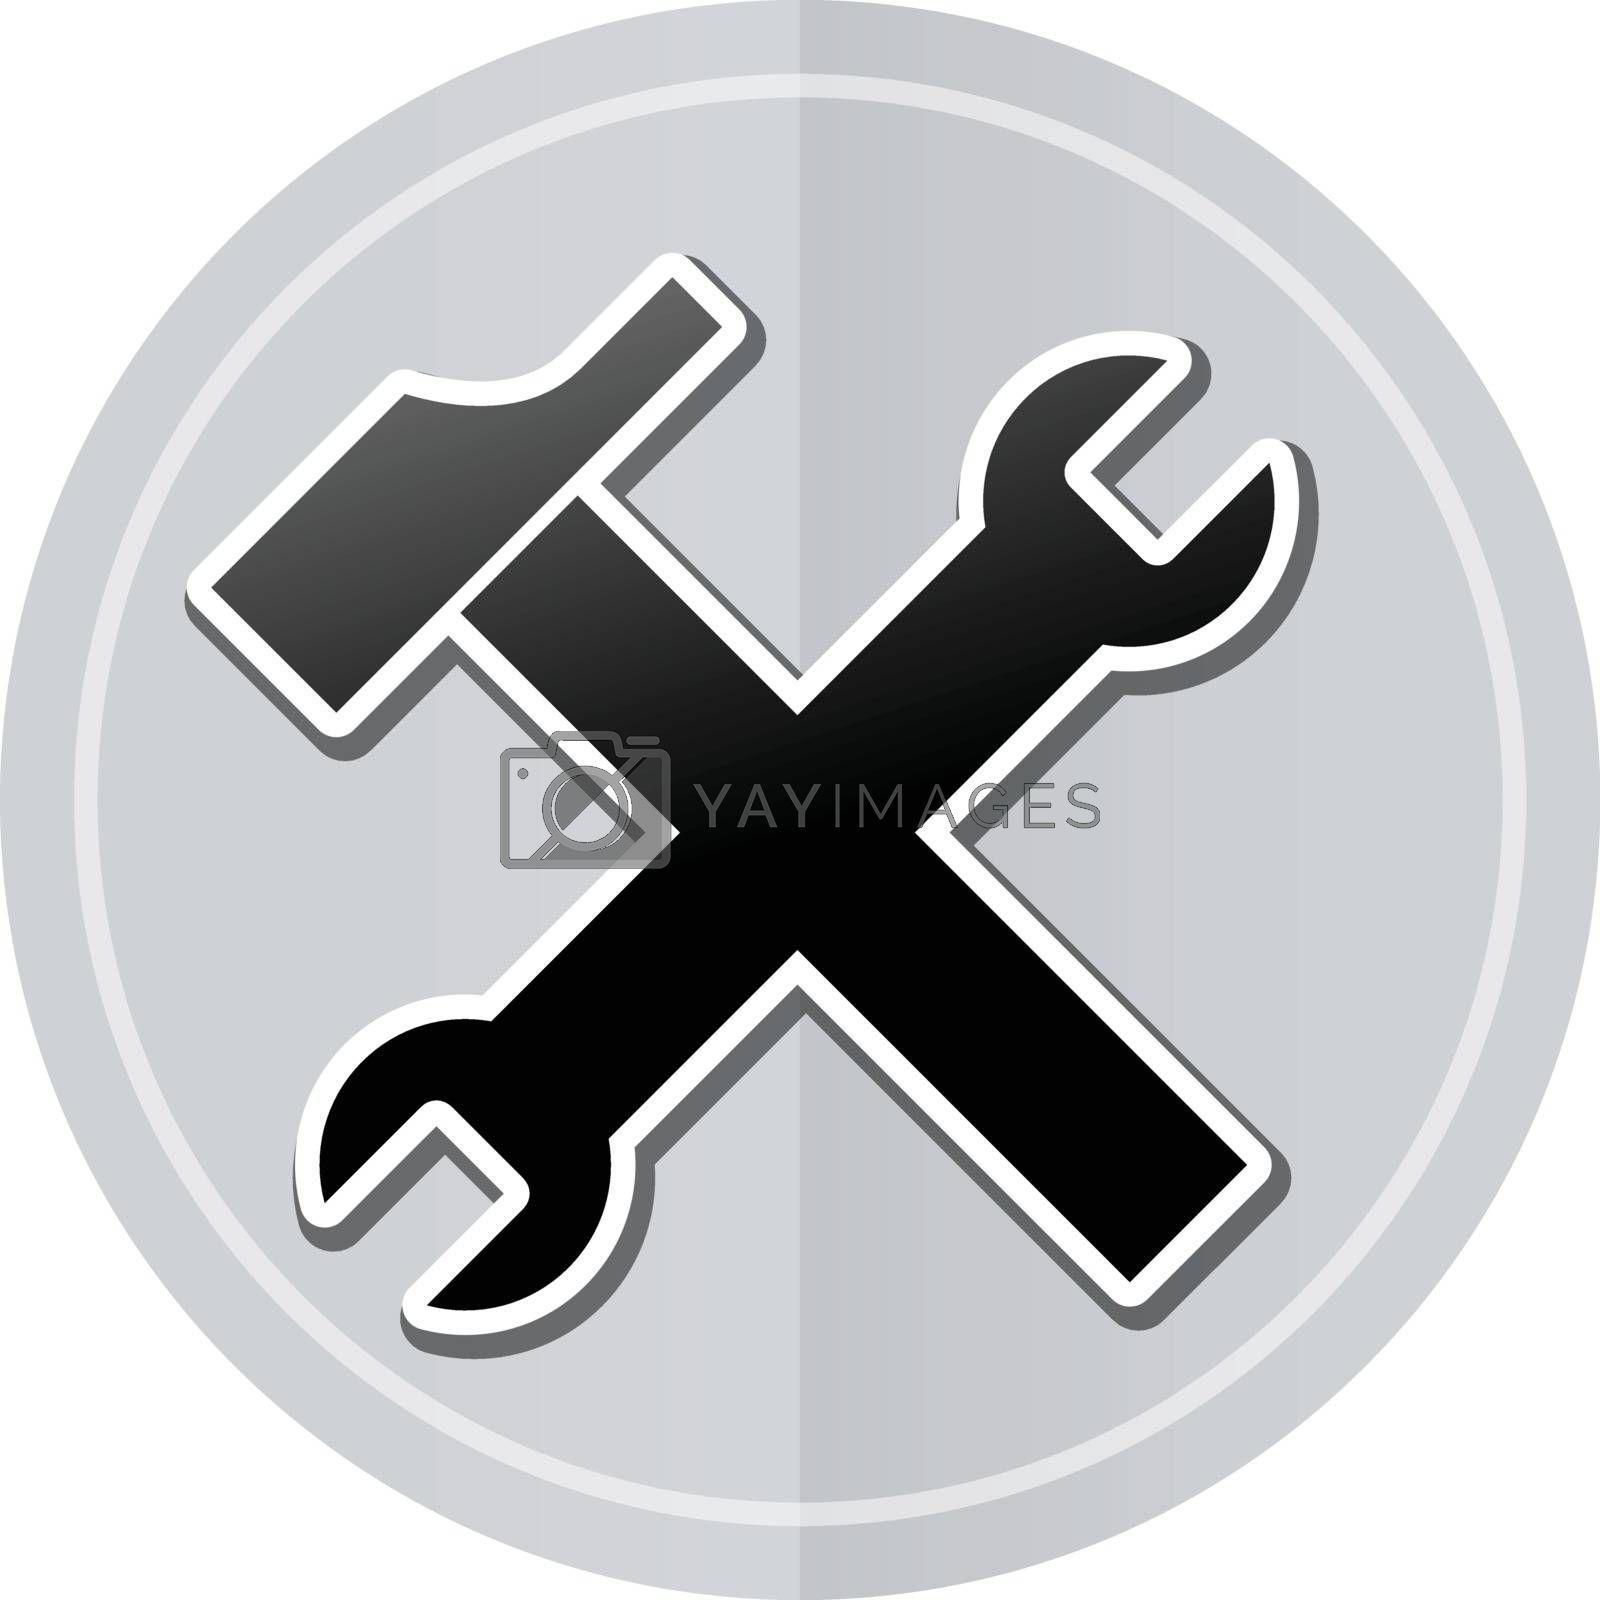 Illustration of tools sticker icon simple design